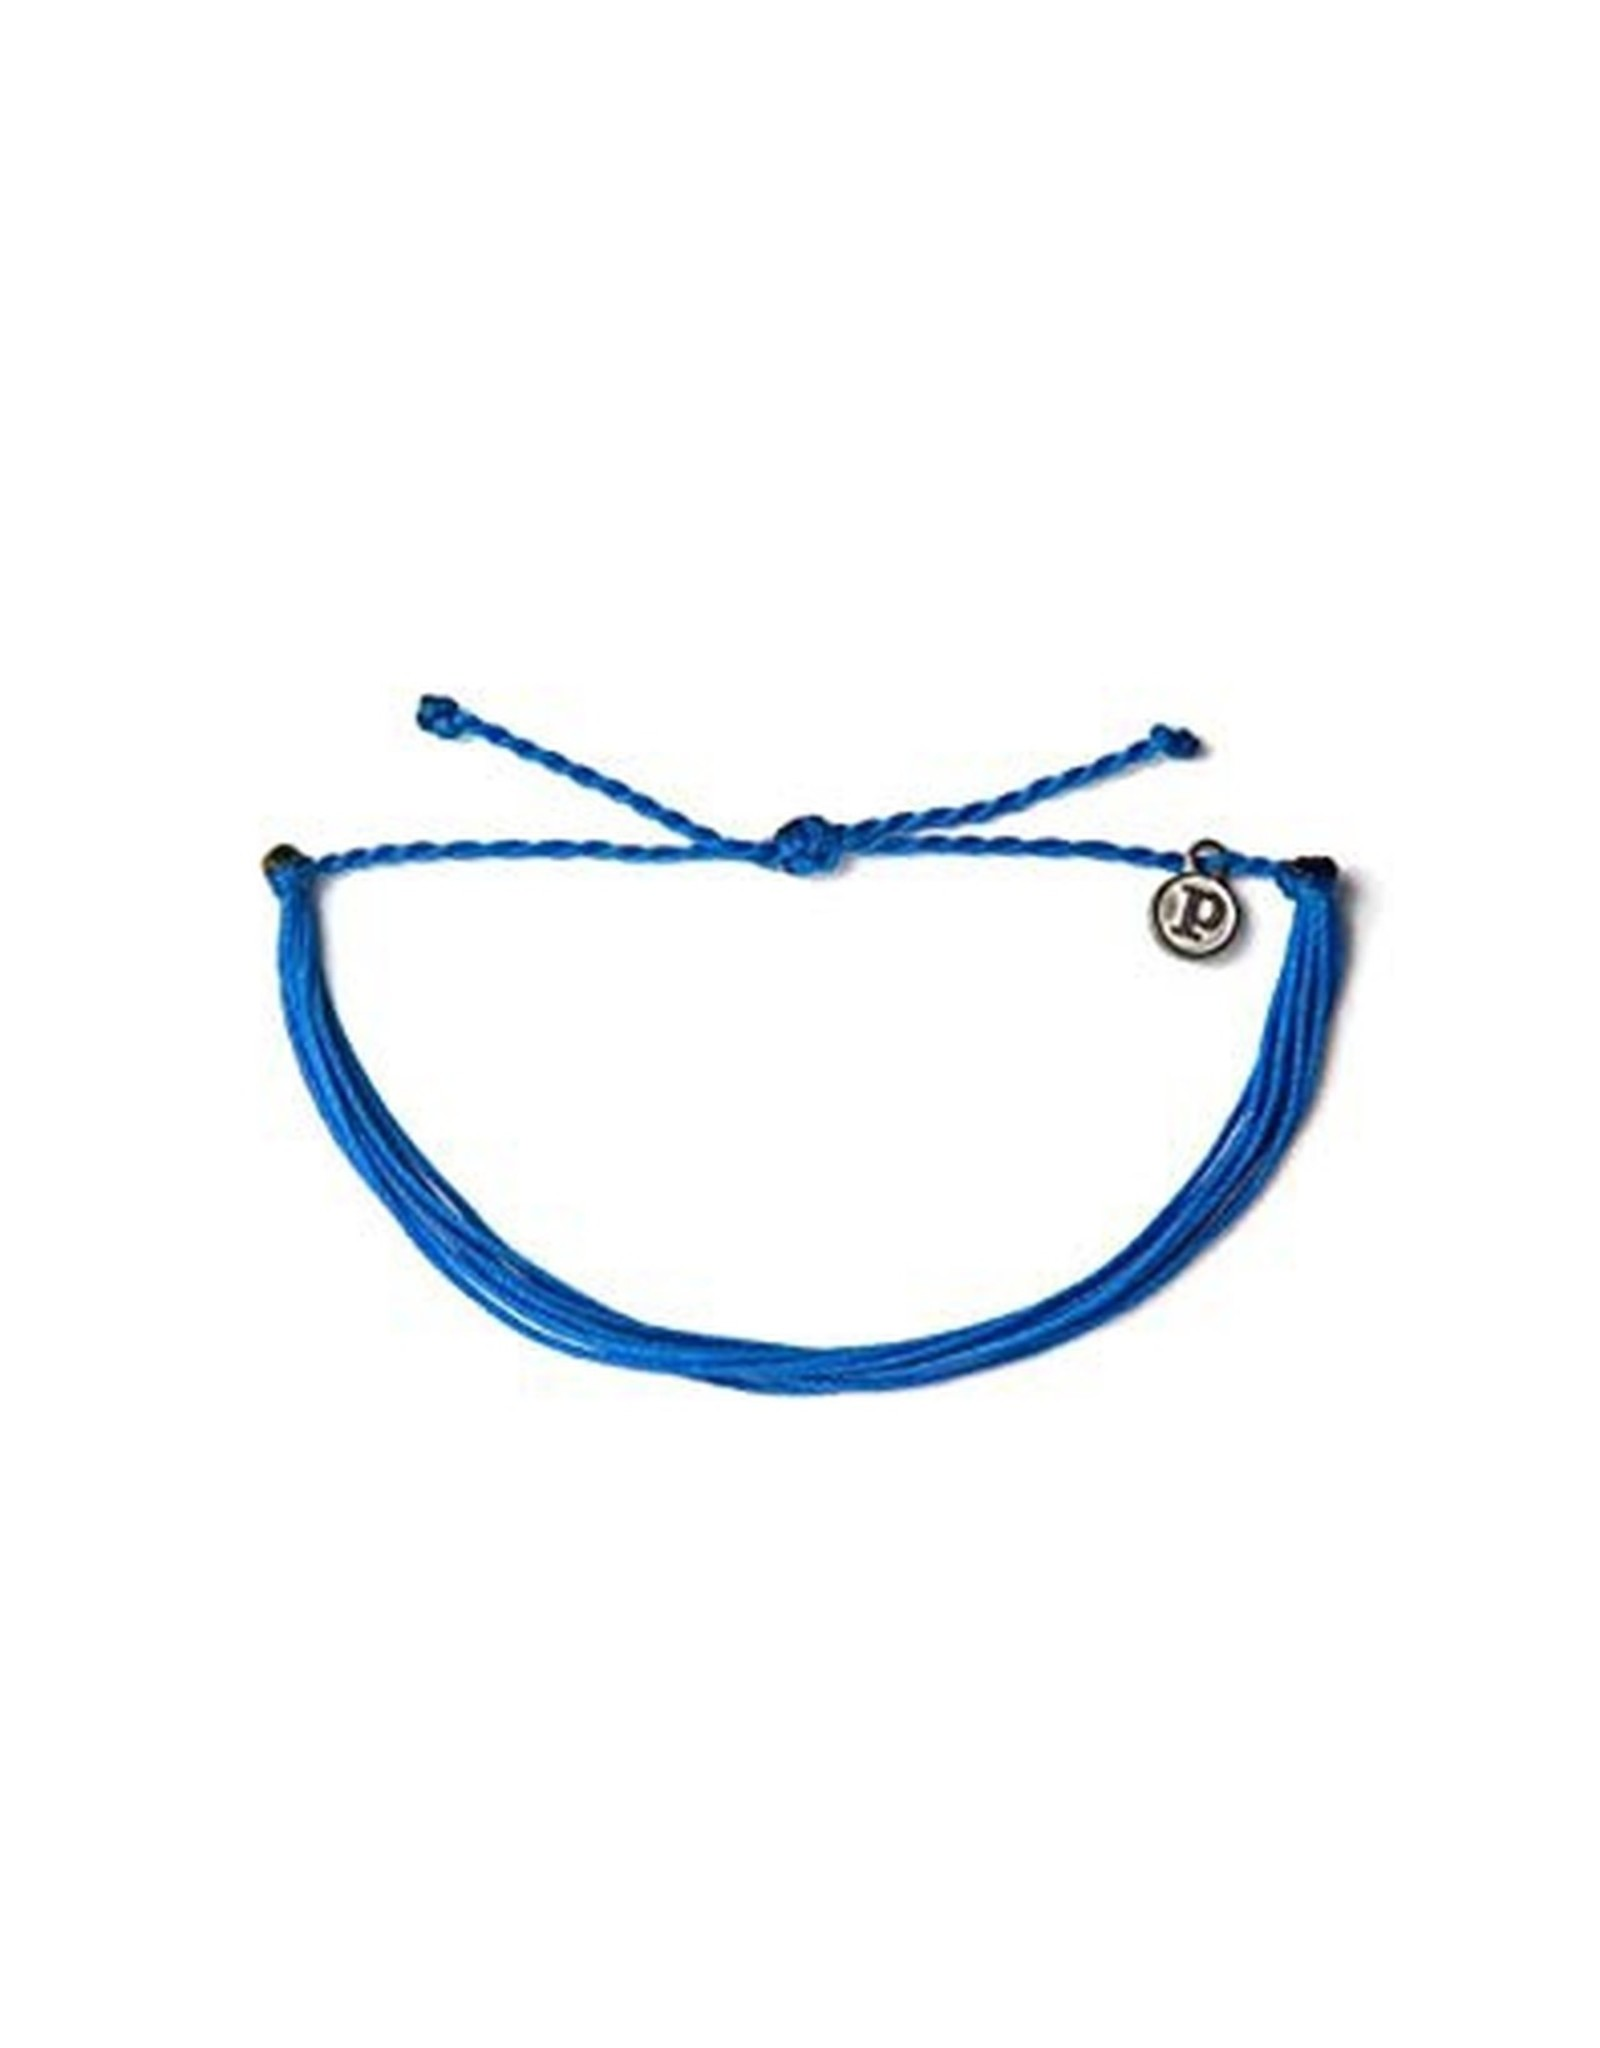 Puravida Bracelets Muted Original Blue